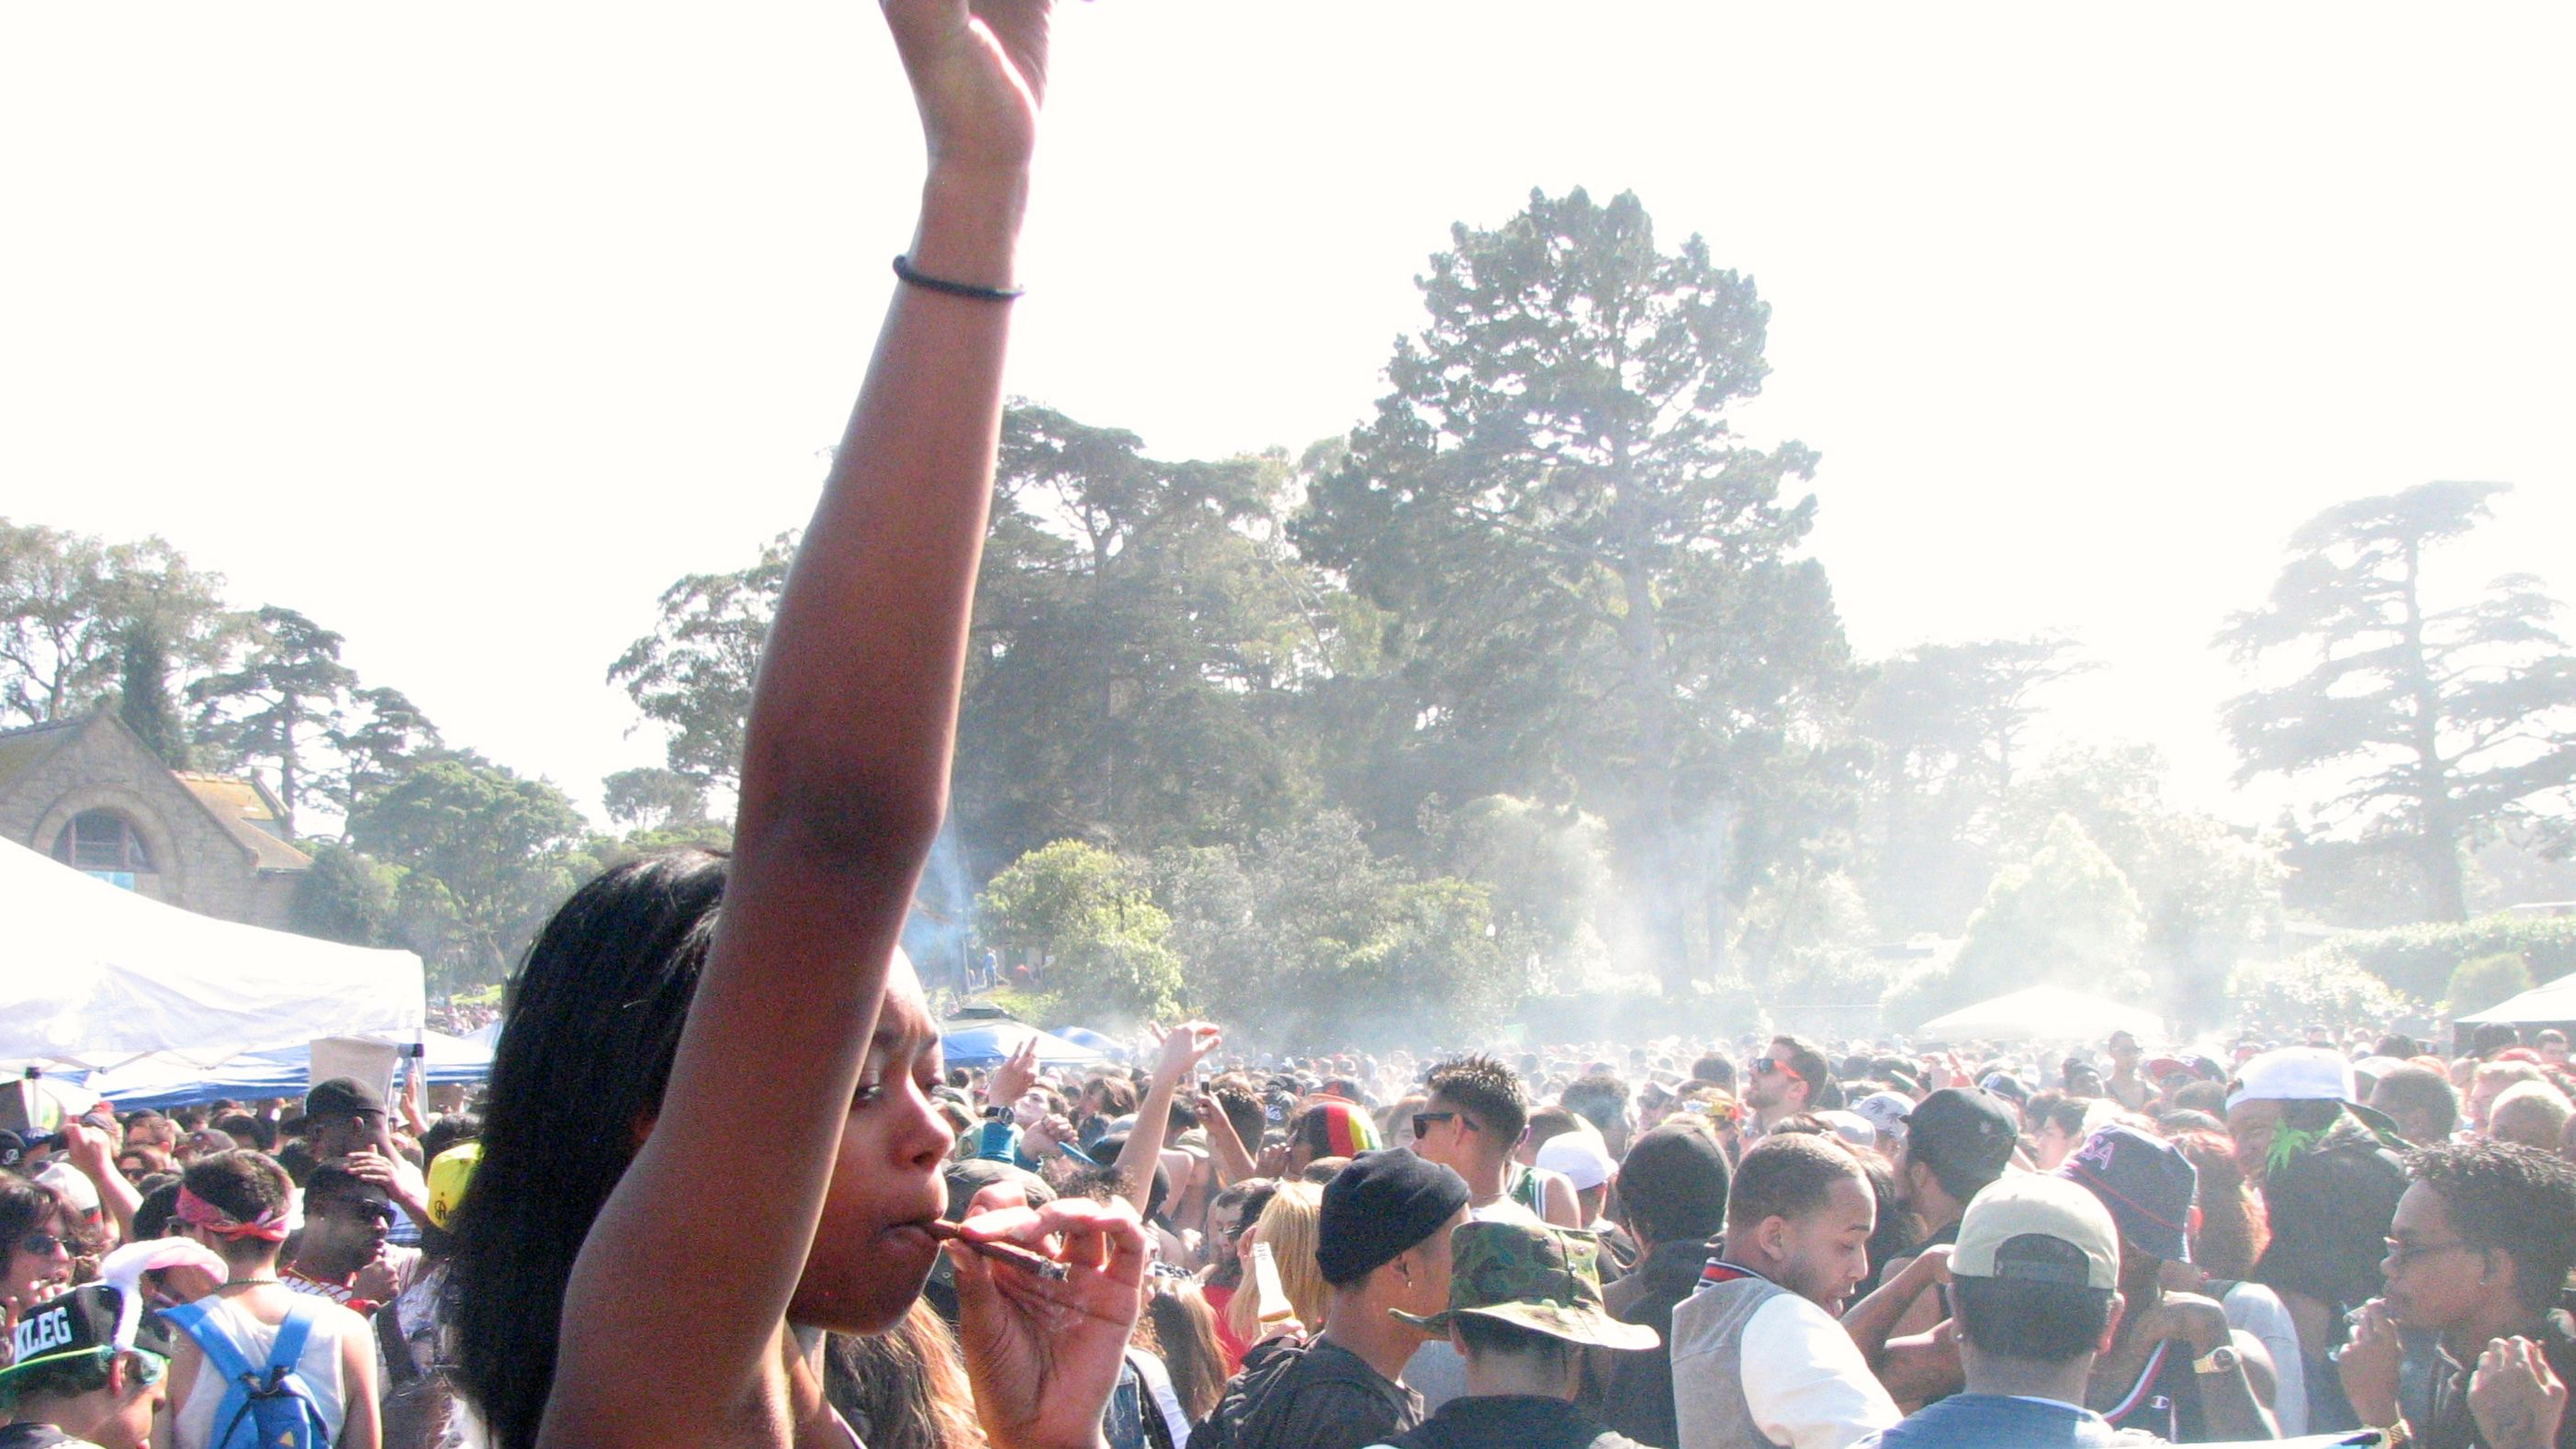 Tens of thousands of folks light up before during and after 4:20 p.m. on Hippie Hill. in San Francisco.